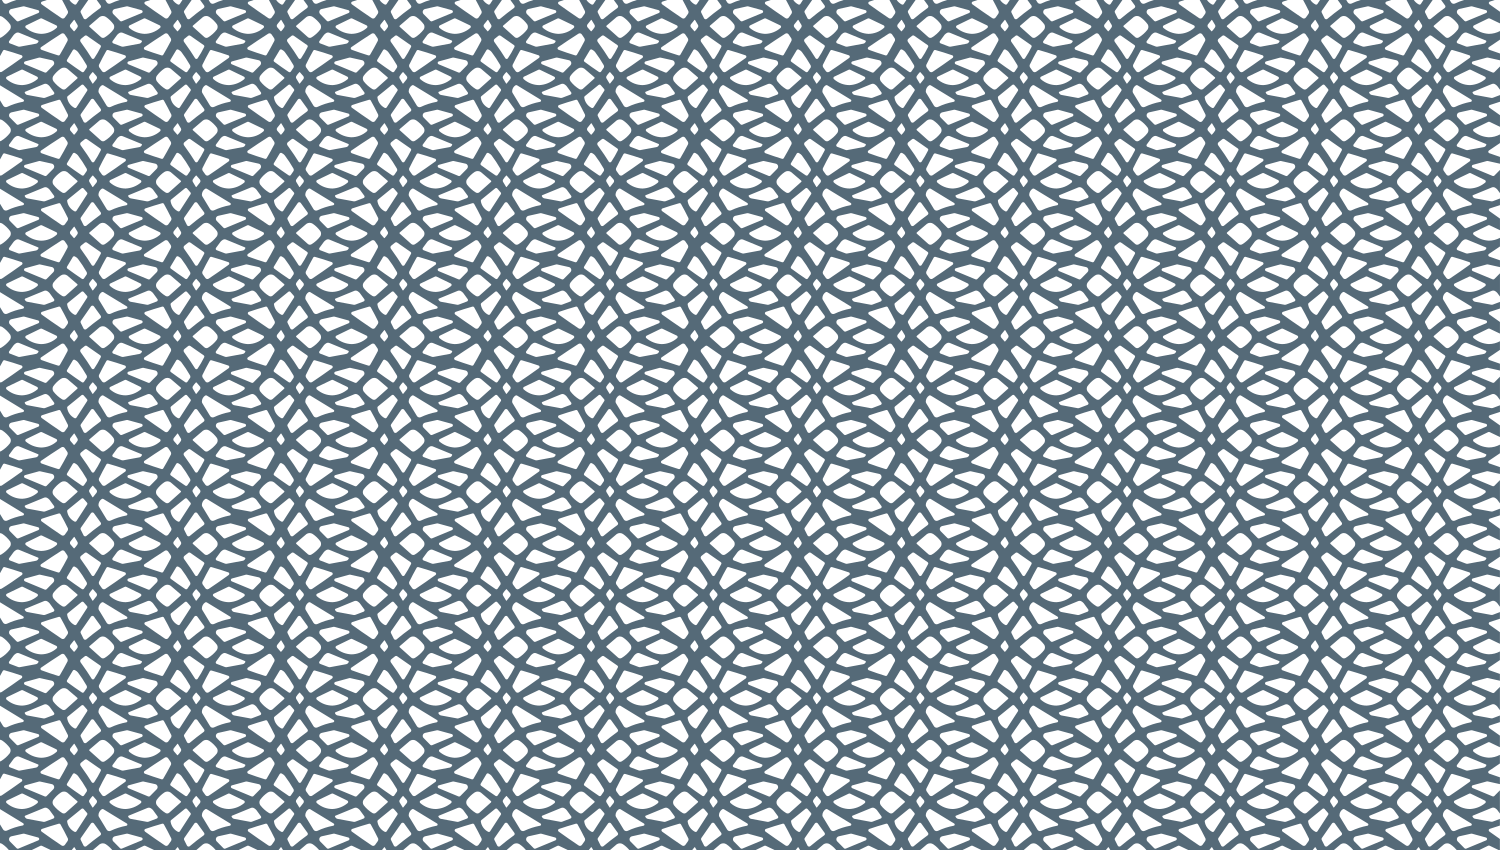 Parasoleil™ Serpentine© pattern displayed with a blue color overlay